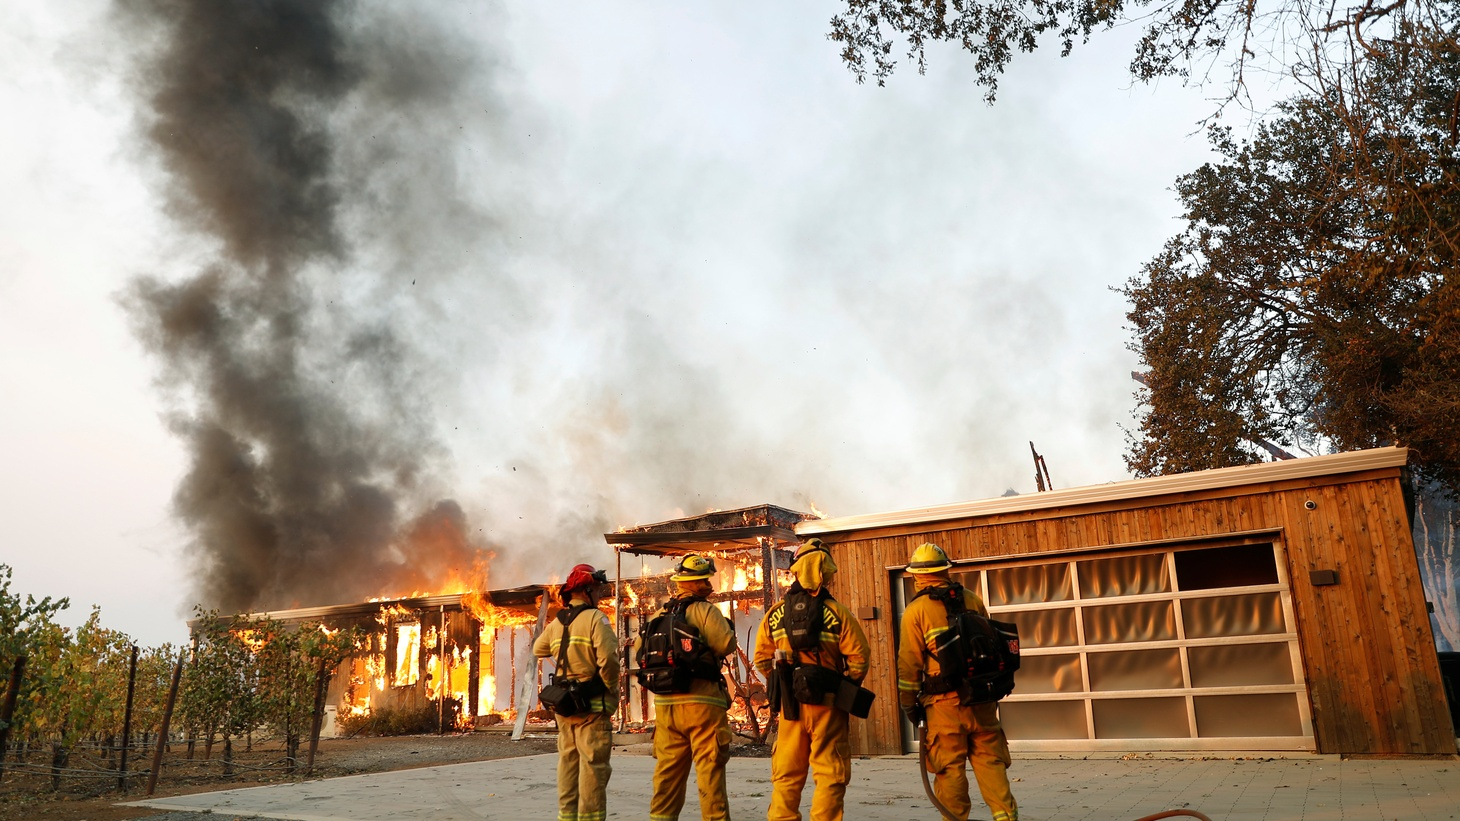 A group of firefighters look on as a house burns during the wind-driven Kincade Fire in Healdsburg, California, U.S. October 27, 2019.